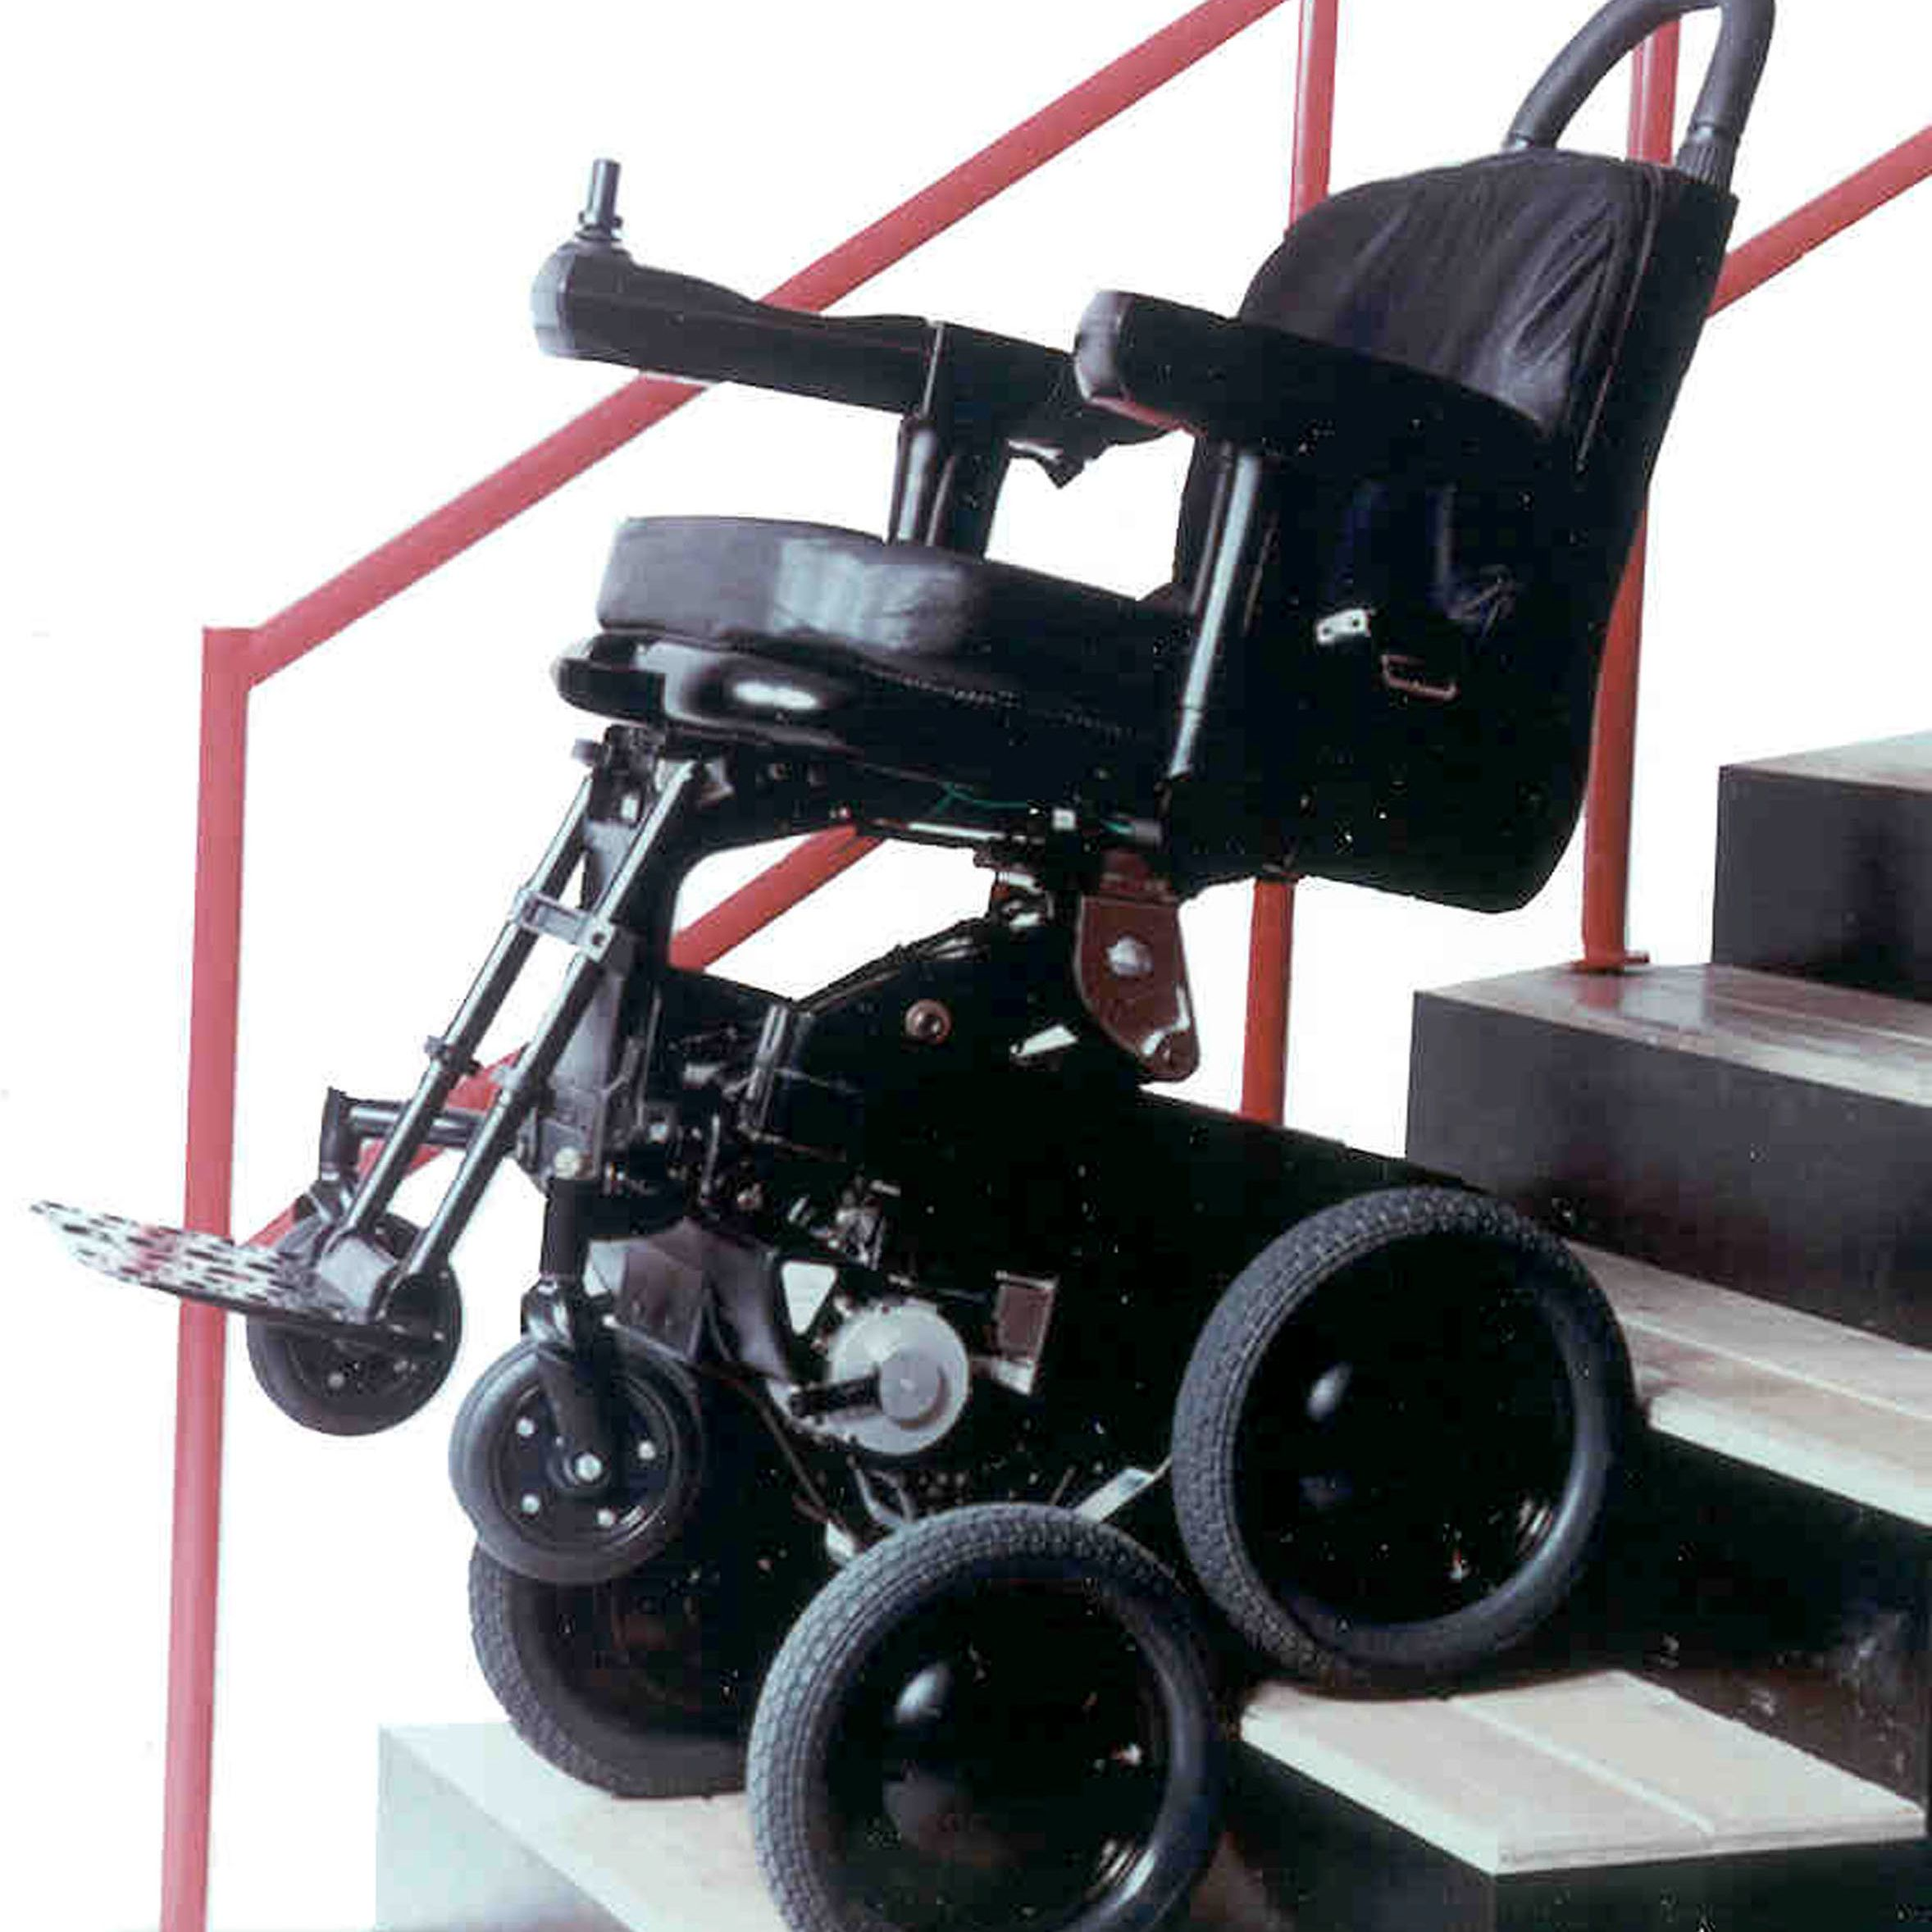 Stair-Climbing Wheelchair: iBOT Mobility System